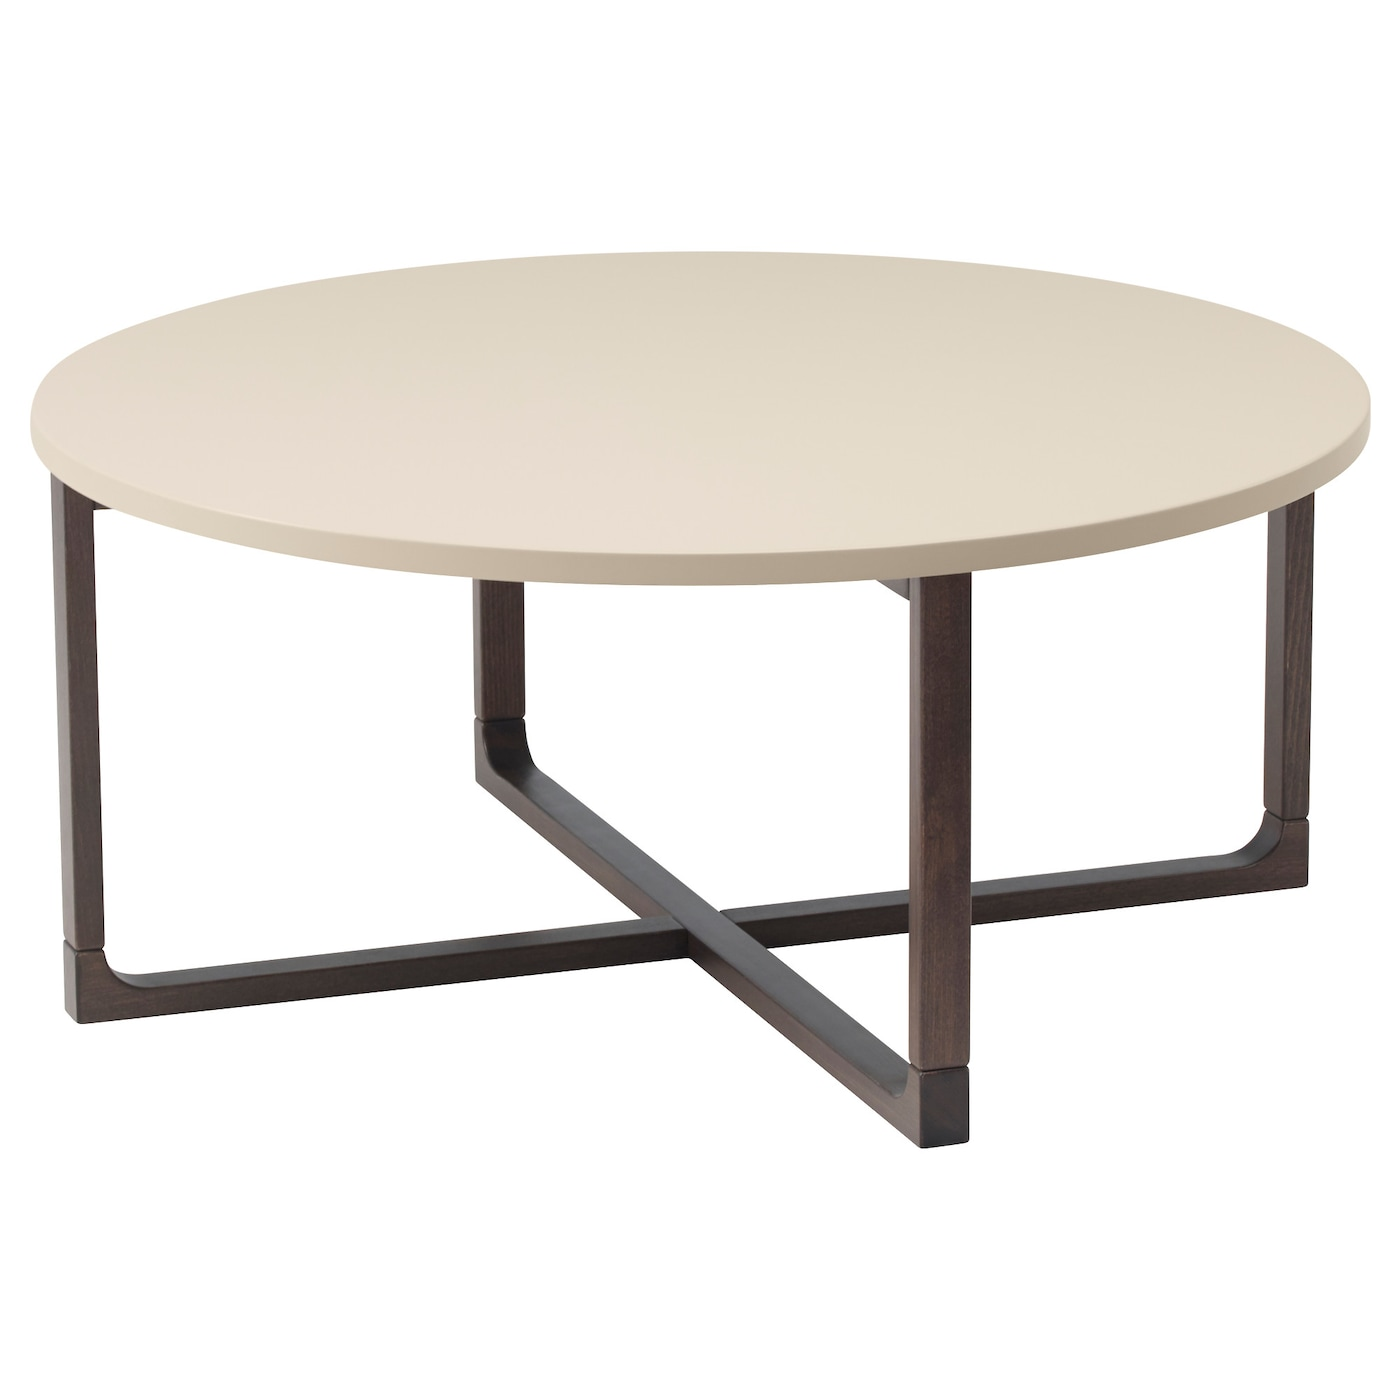 IKEA RISSNA coffee table The high-gloss surfaces reflect light and give a  vibrant look